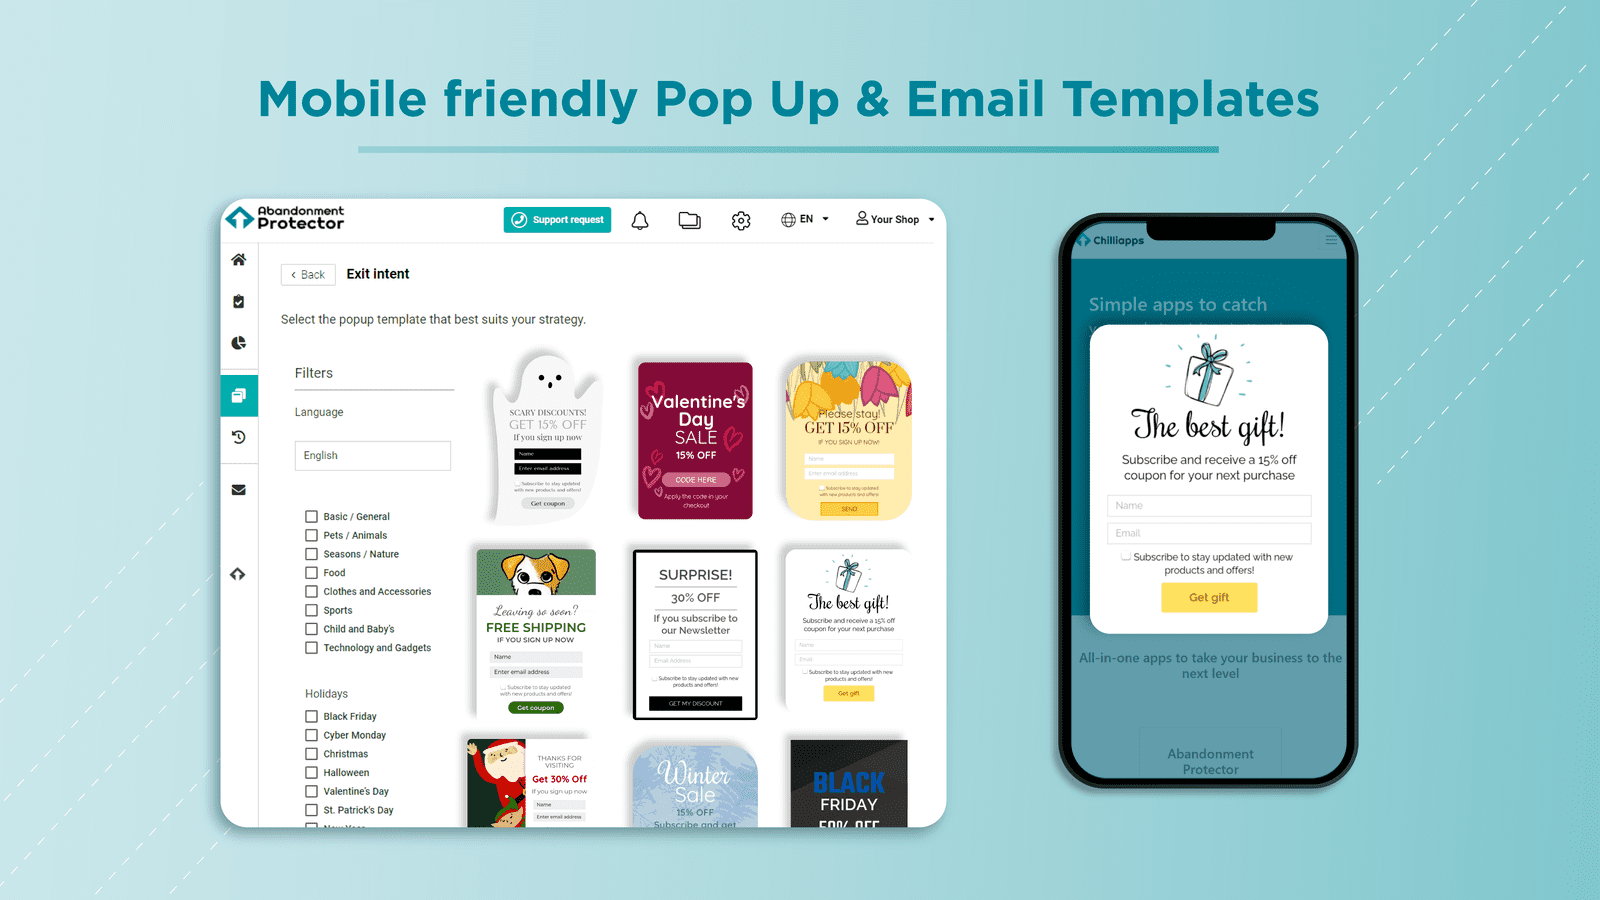 Customizable and mobile-friendly templates